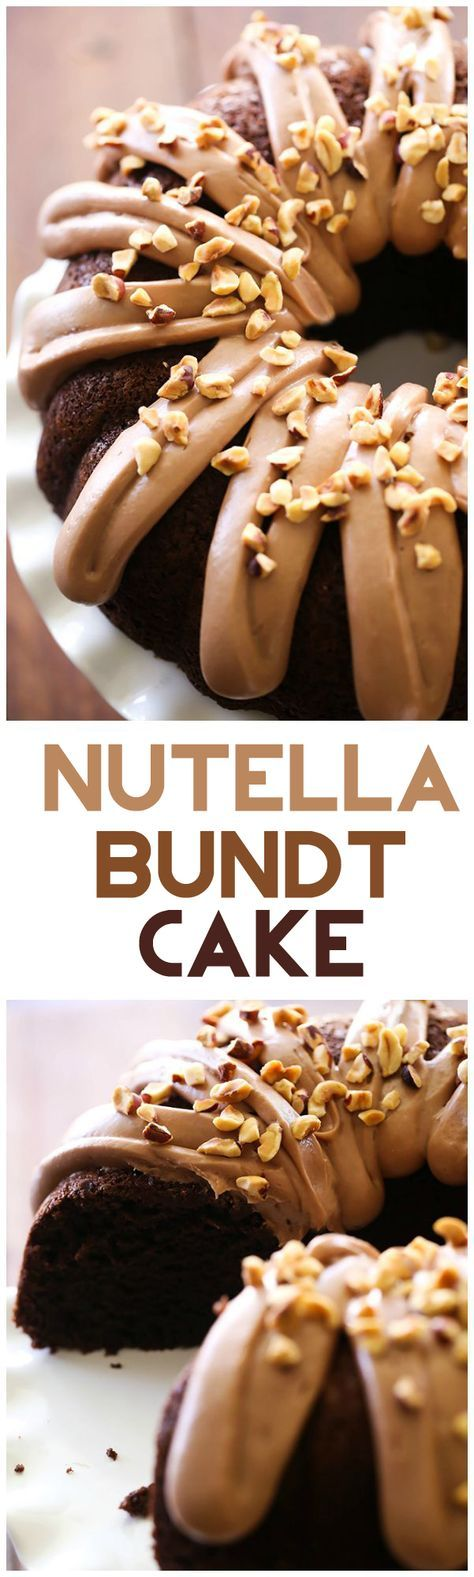 Nutella Bundt Cake... This Cake is beyond moist and delicious! It is a chocolate-lovers dream!